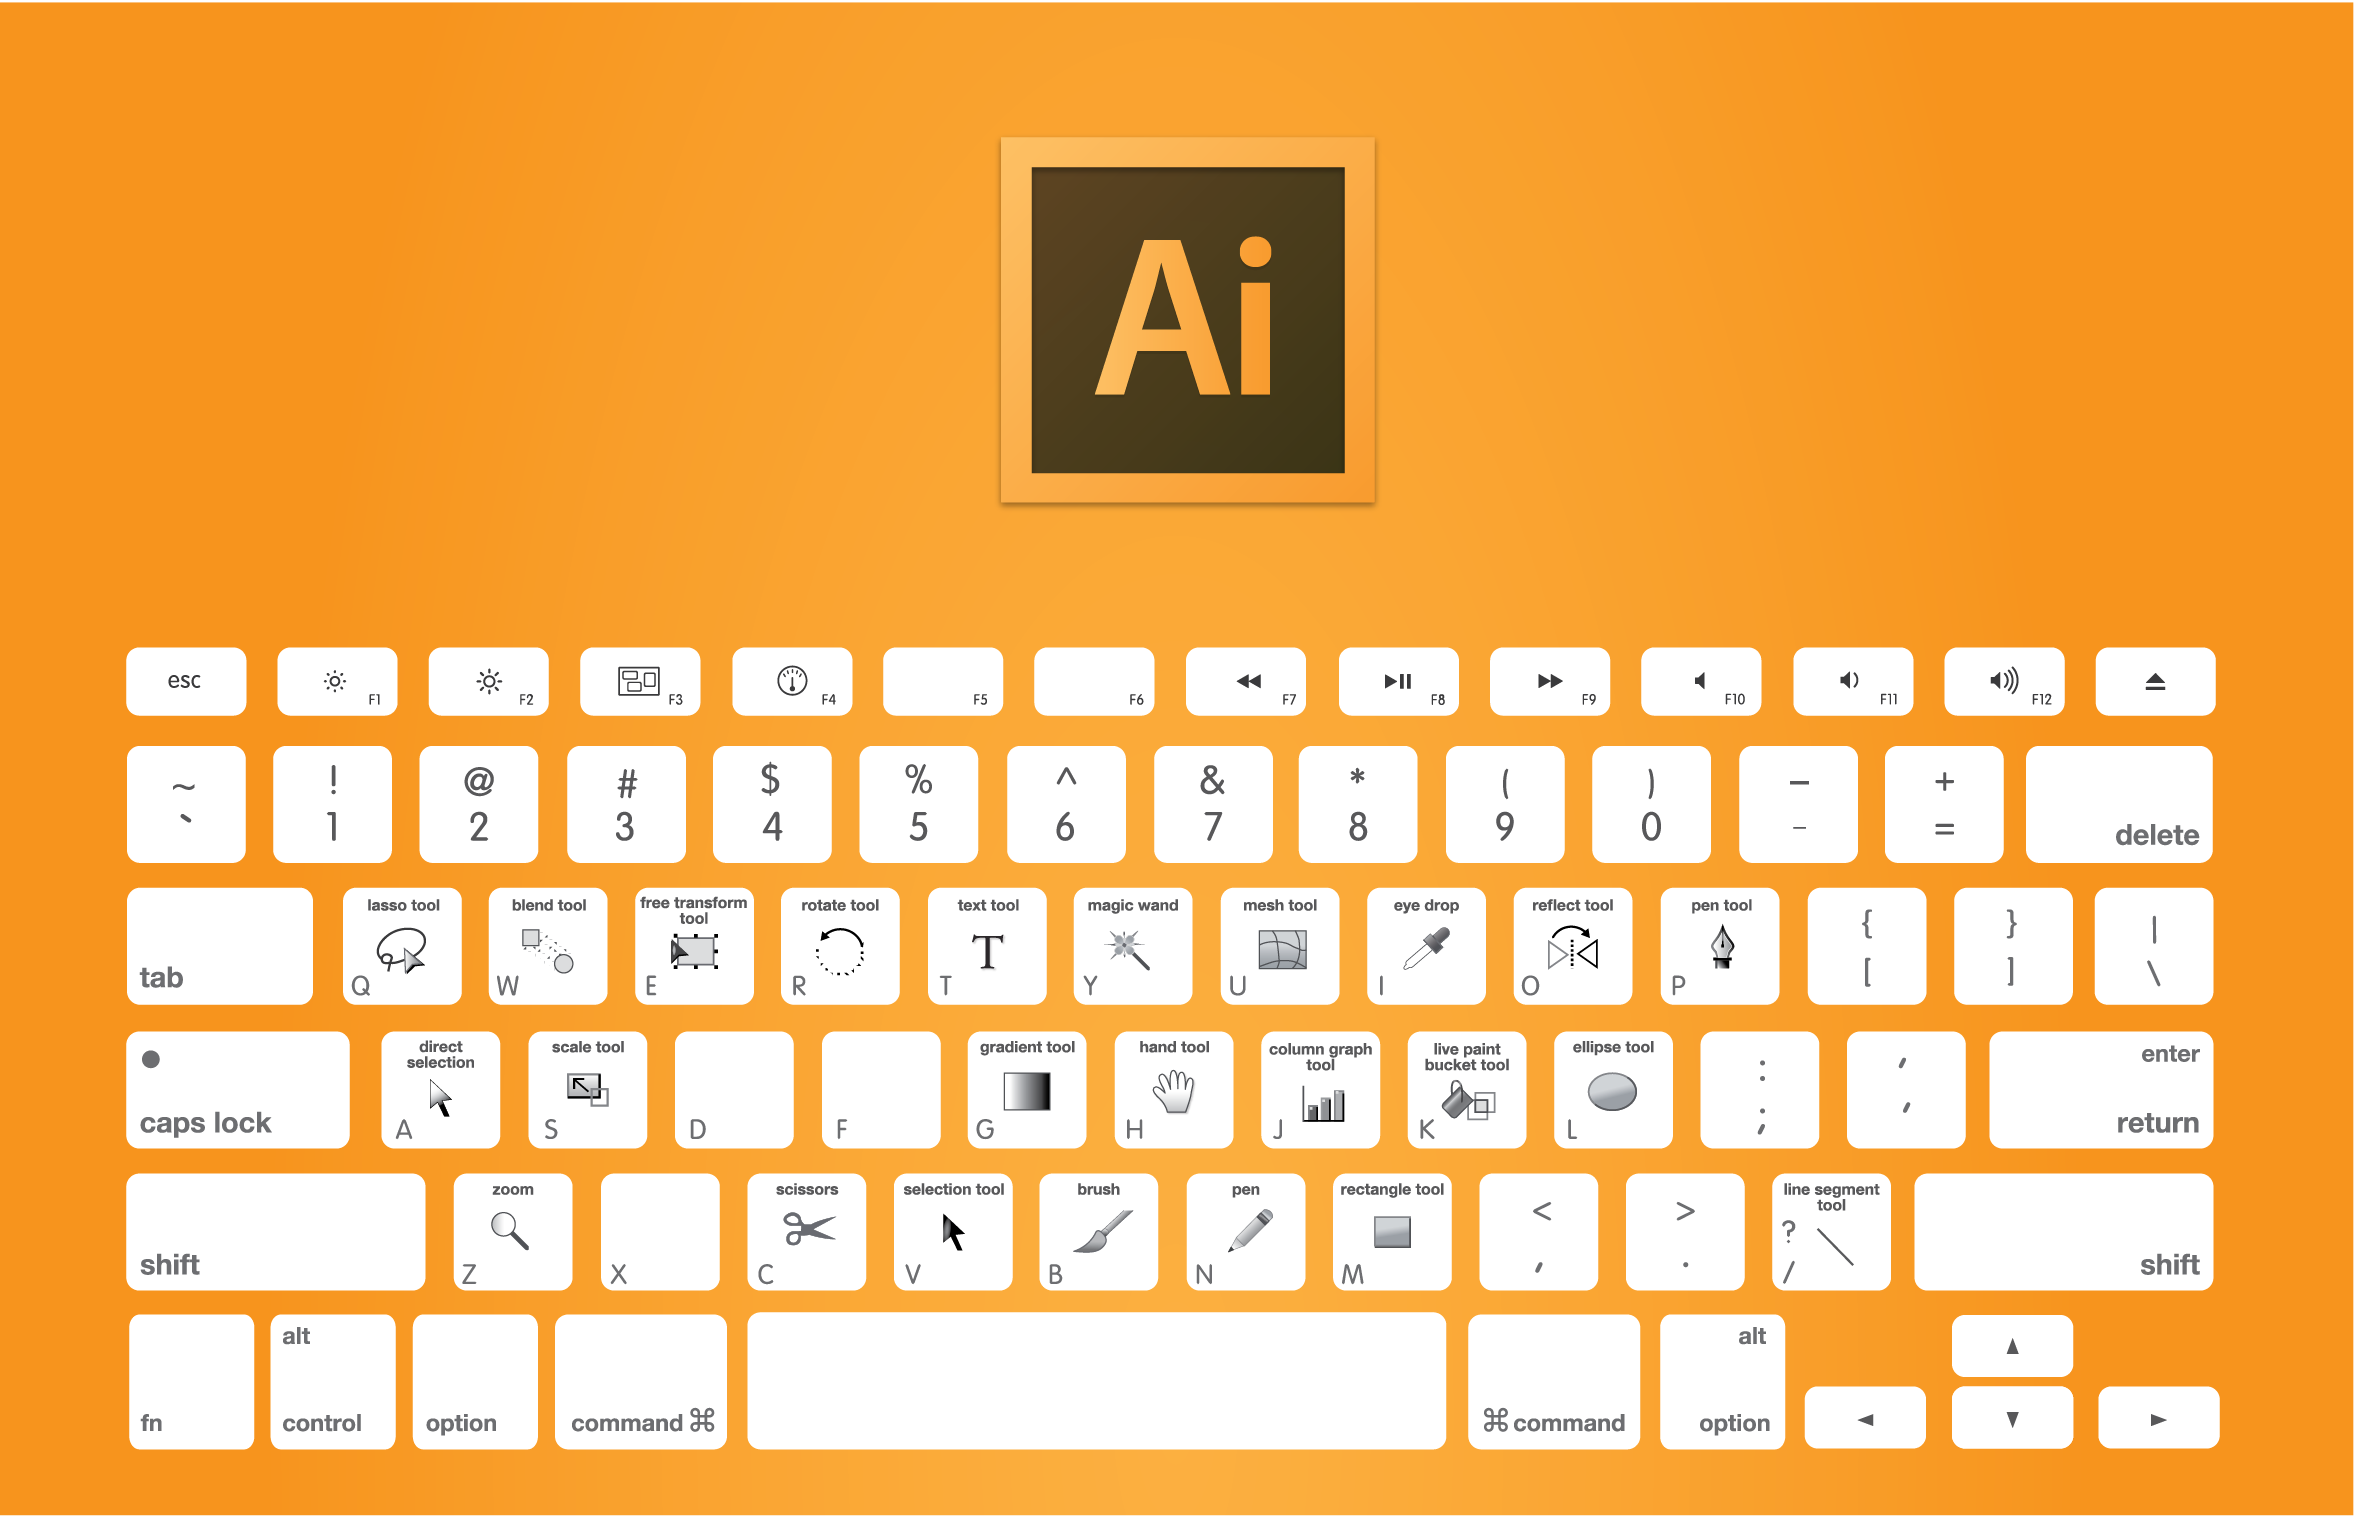 Chart of the keyboard shortcuts to use in Adobe Illustrator: